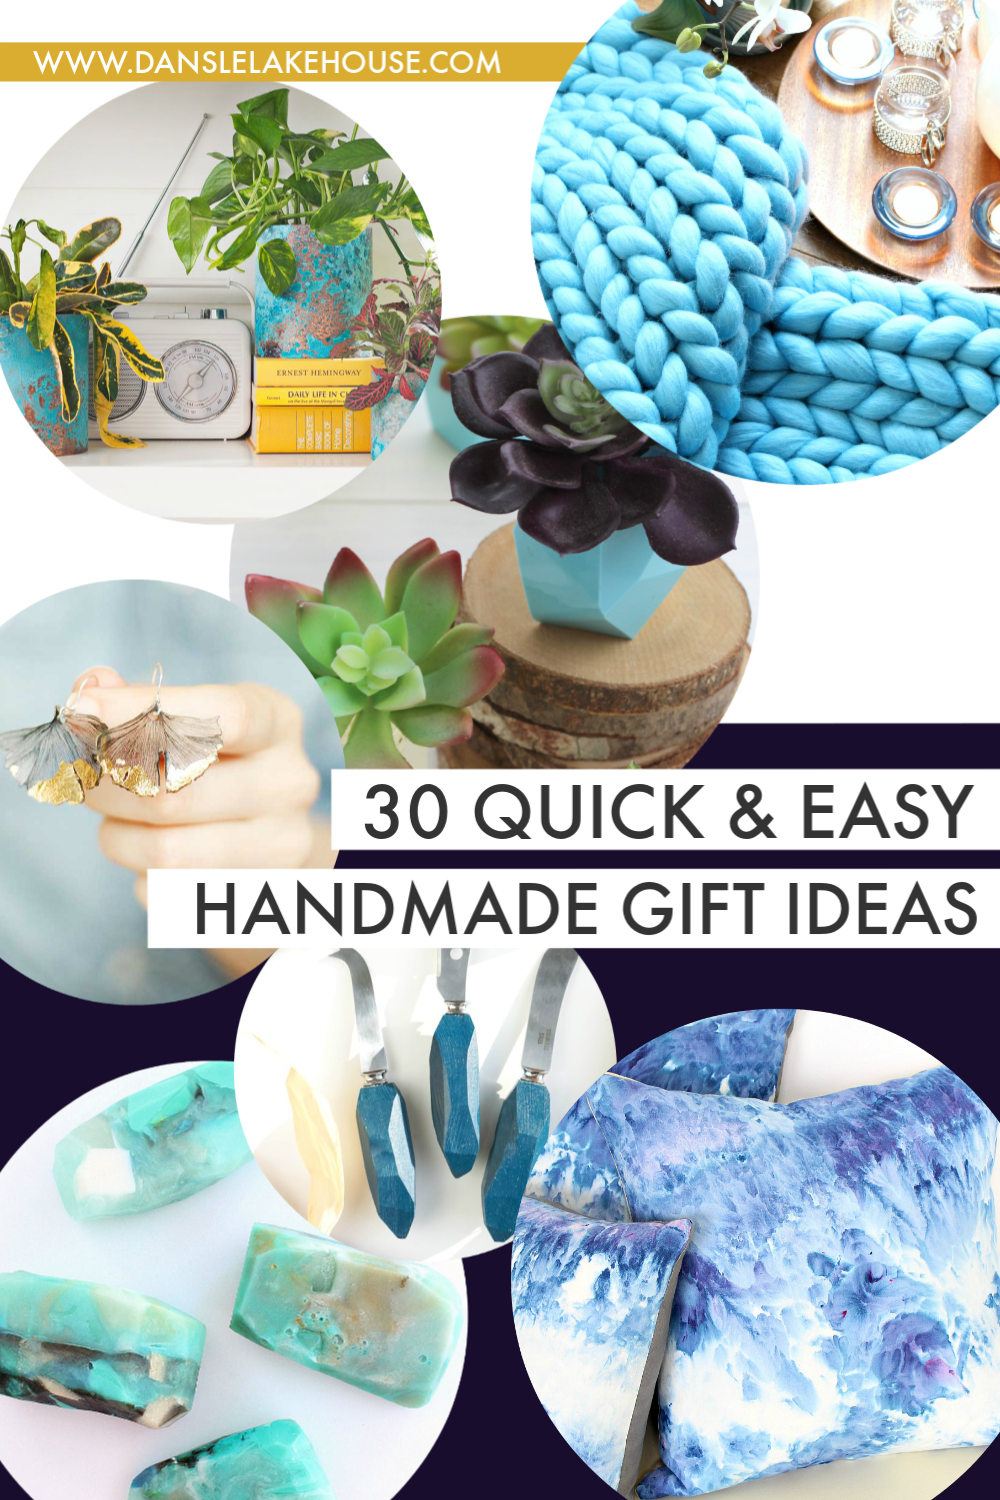 30 Beautiful and Modern, Quick and Easy Handmade Gift Ideas | Dans le Lakehouse | #handmadegift #ditgift #giftguide #giftideas #diy